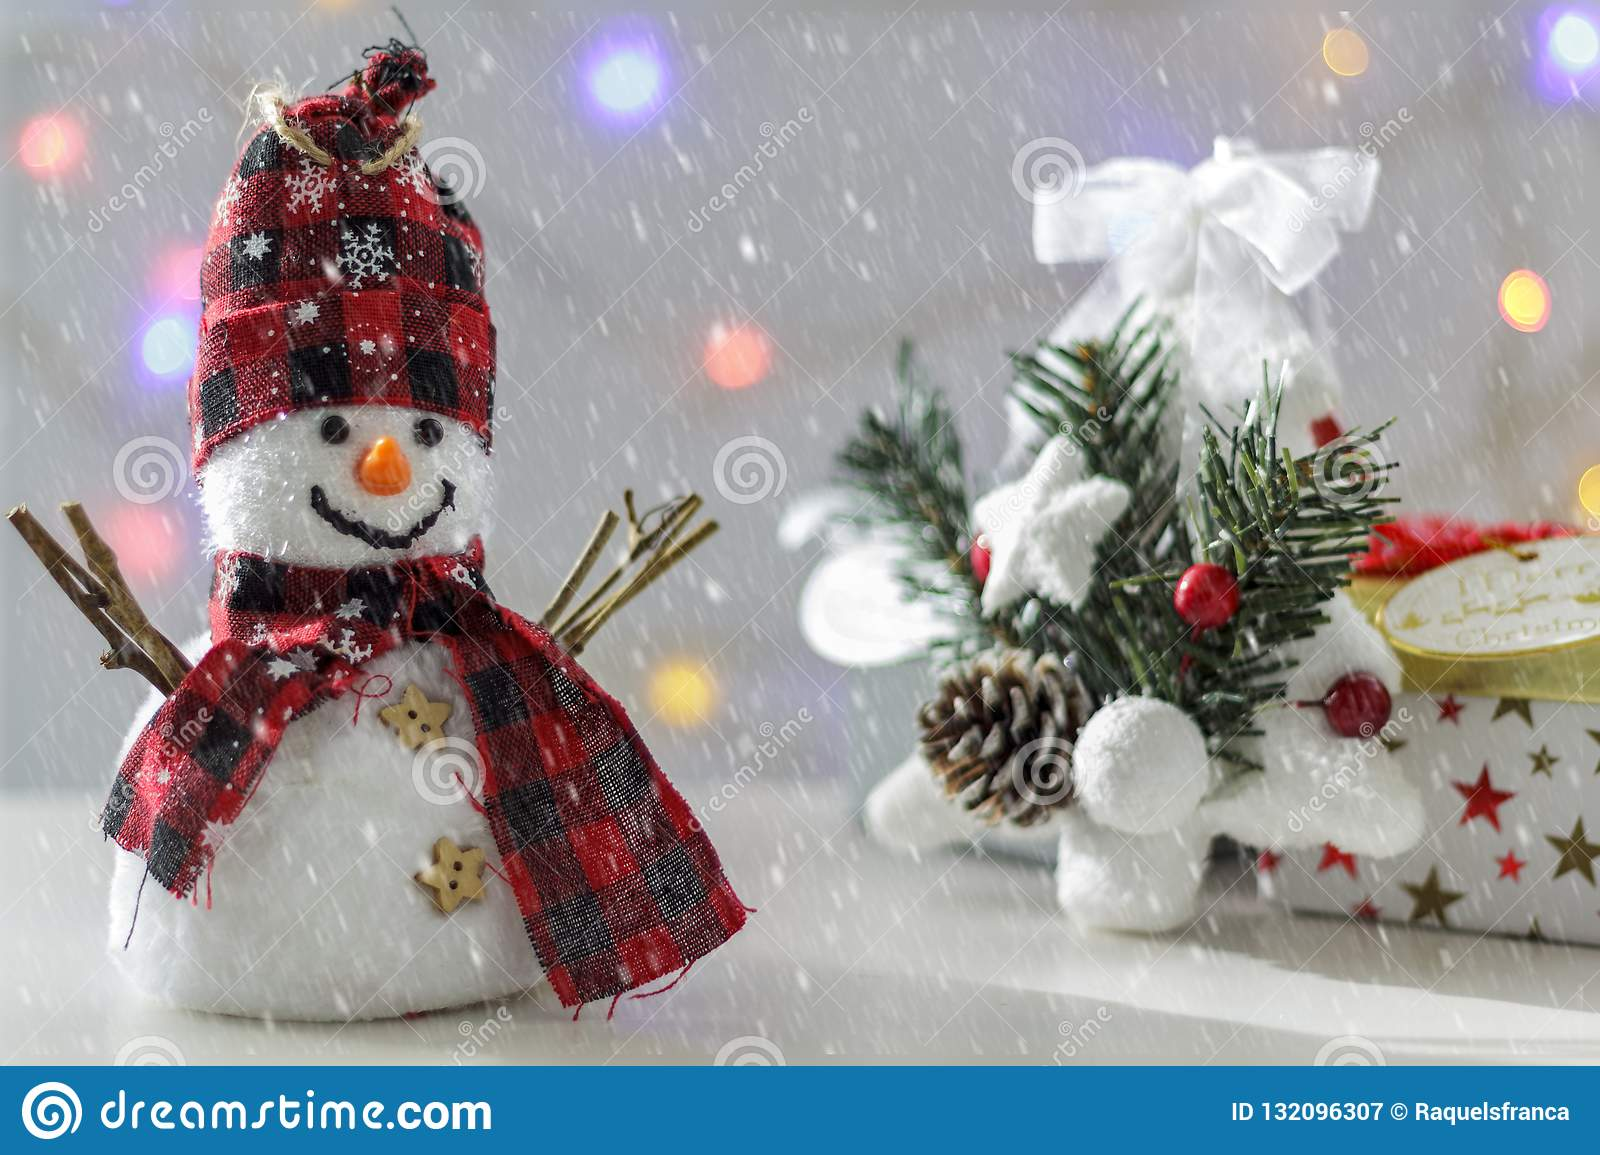 Snowman With Christmas Tree Gift Boxes And Christmas Lights On The